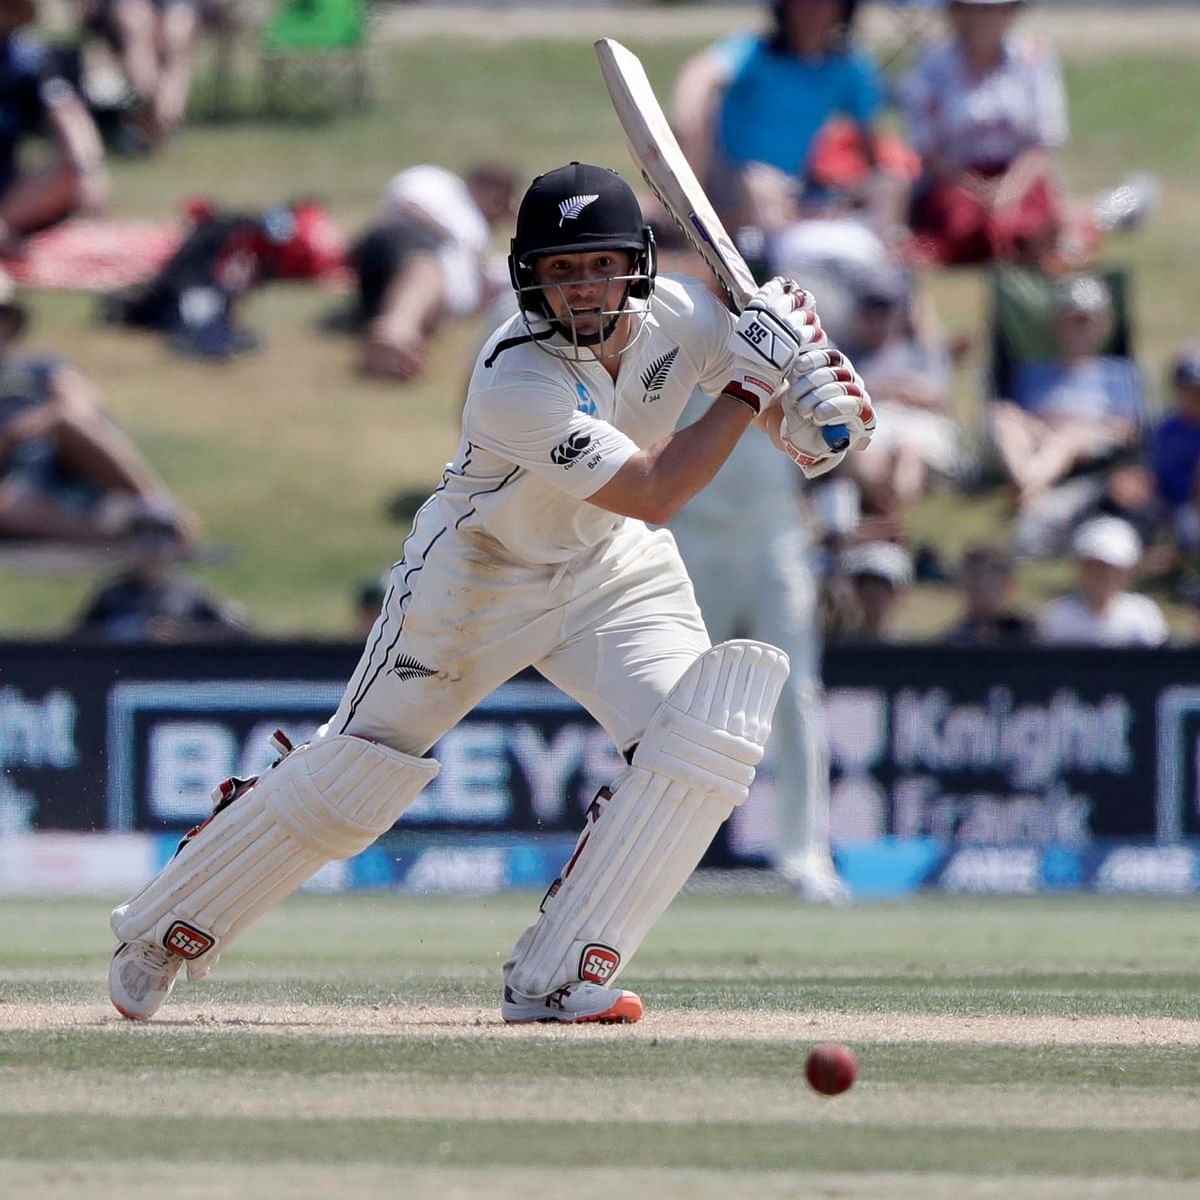 New Zealand vs England: Watling waltzs, Poms struggle